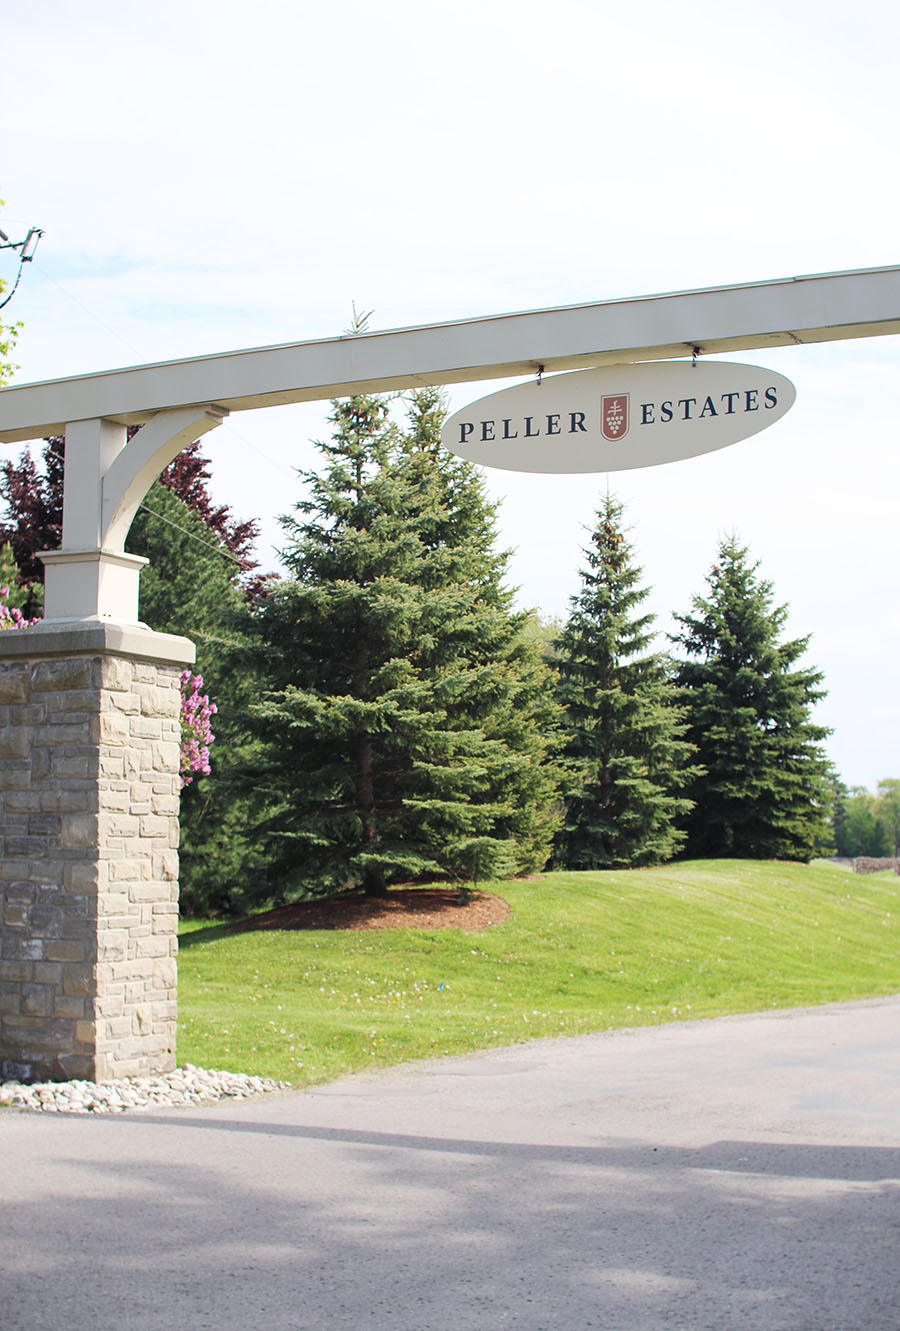 Niagara-On-The-Lake-Winery-Peller-Estates